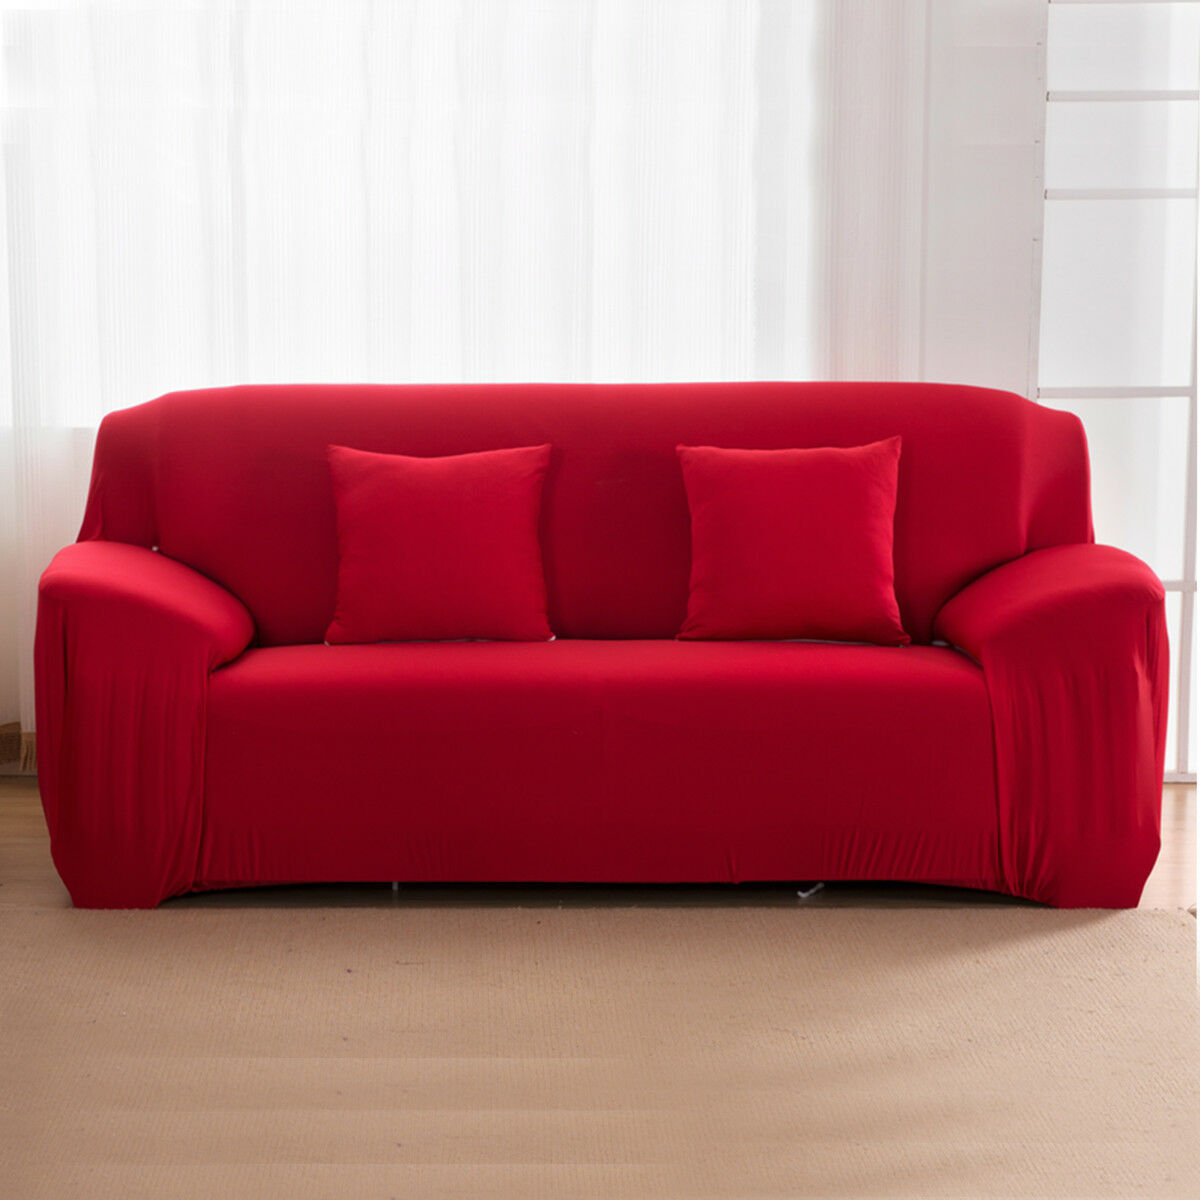 EASY-Stretch-Couch-Sofa-Lounge-Covers-Recliner-1-2-3-Seater-Dining-Chair-Cover thumbnail 84